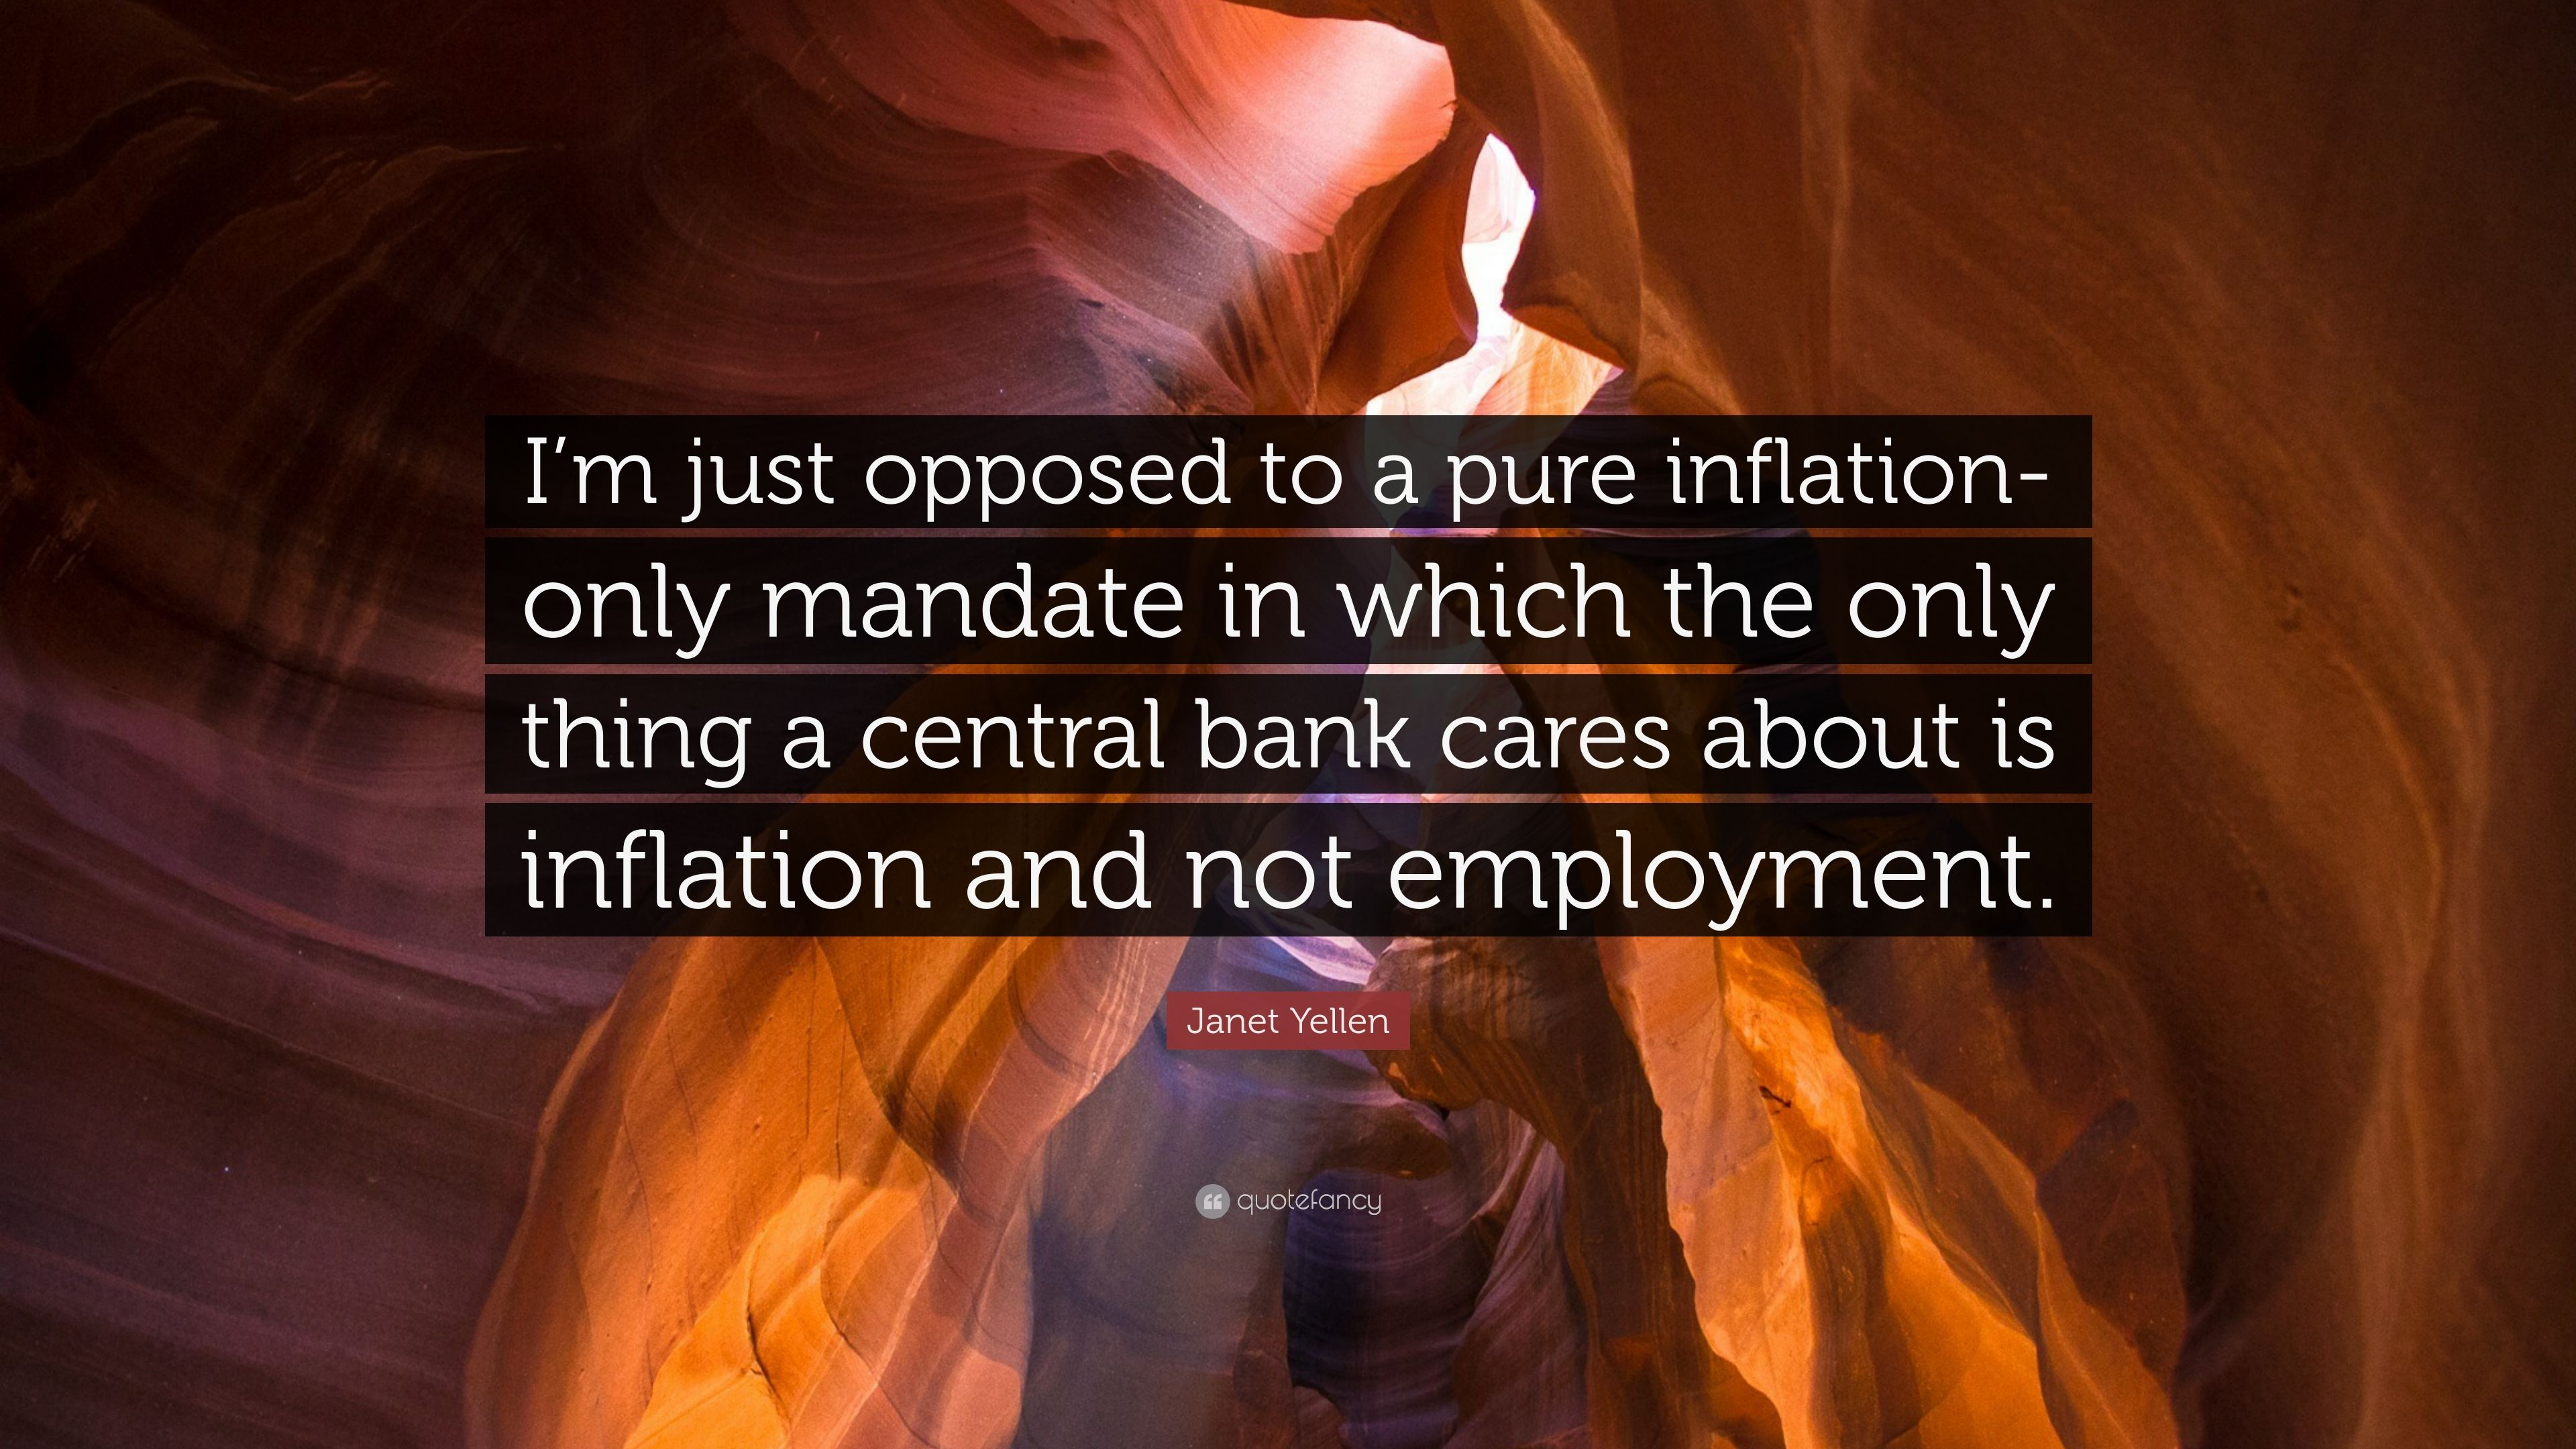 janet yellen quote i m just opposed to a pure inflation only mandate in which the only thing a central bank cares about is inflation and no 7 wallpapers quotefancy pure inflation only mandate